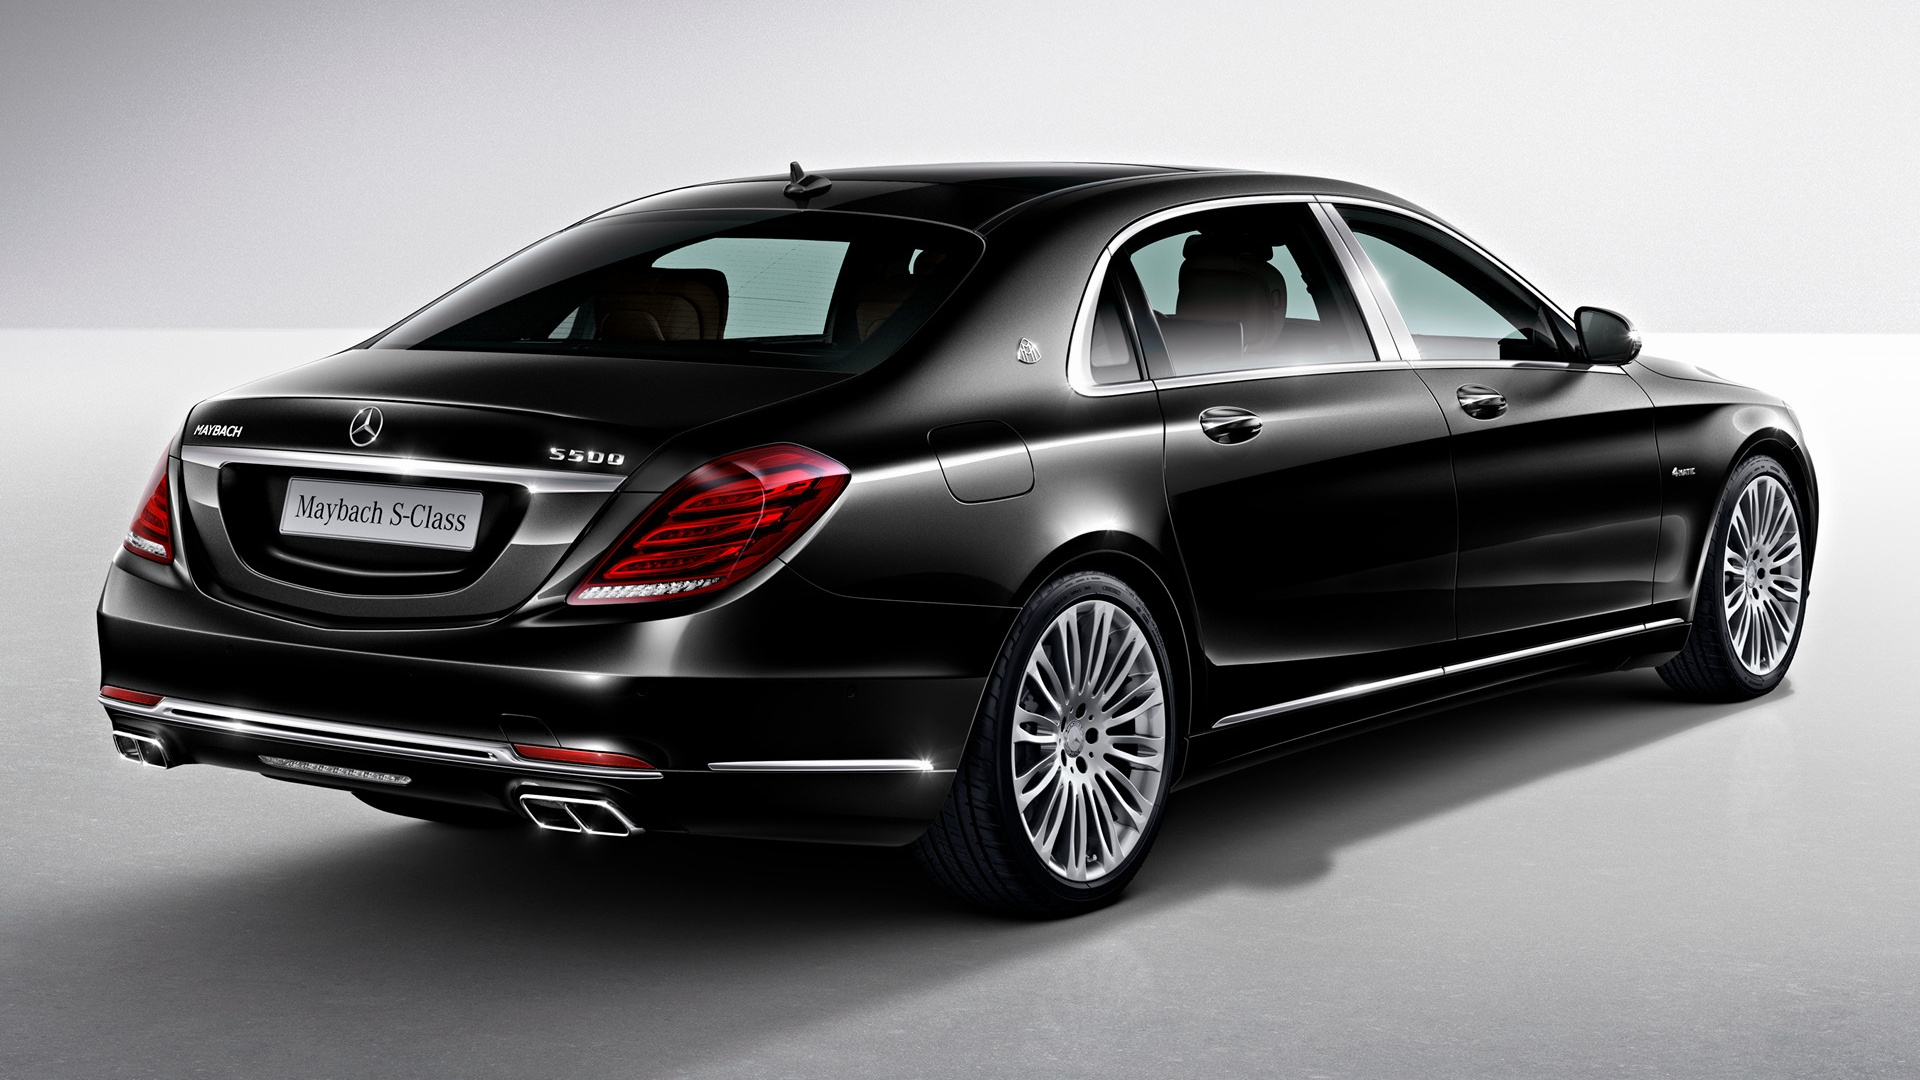 mercedes maybach s 500 in munich hire car rental pd. Black Bedroom Furniture Sets. Home Design Ideas